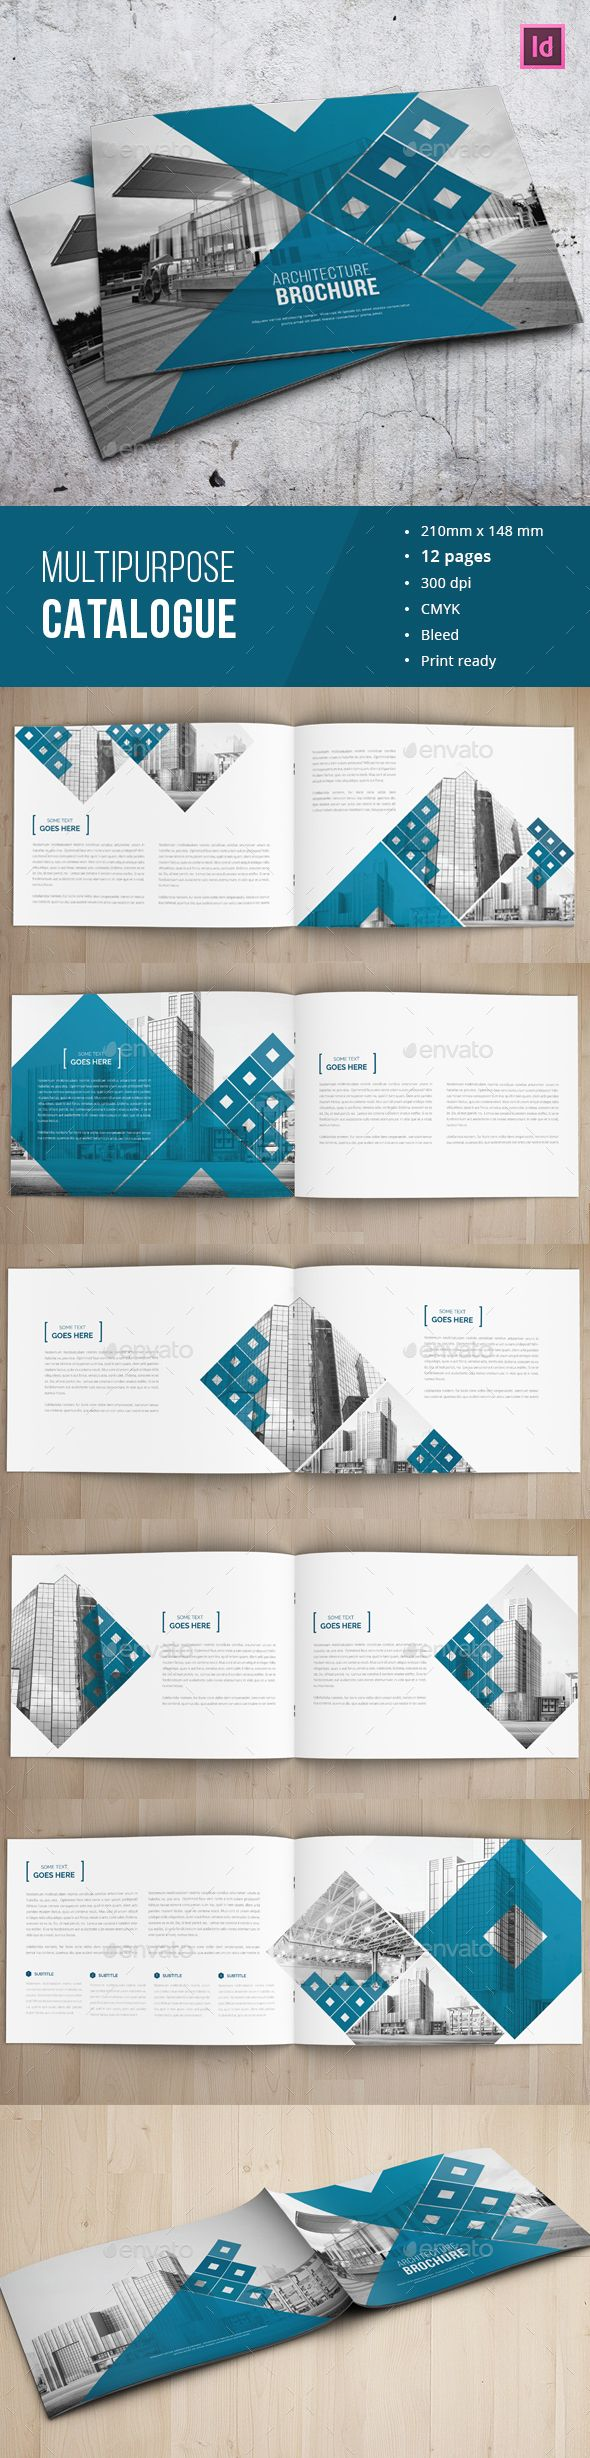 Architecture Business Brochure Template InDesign INDD. Download here: http://graphicriver.net/item/architecture-business-brochure/15023233?ref=ksioks